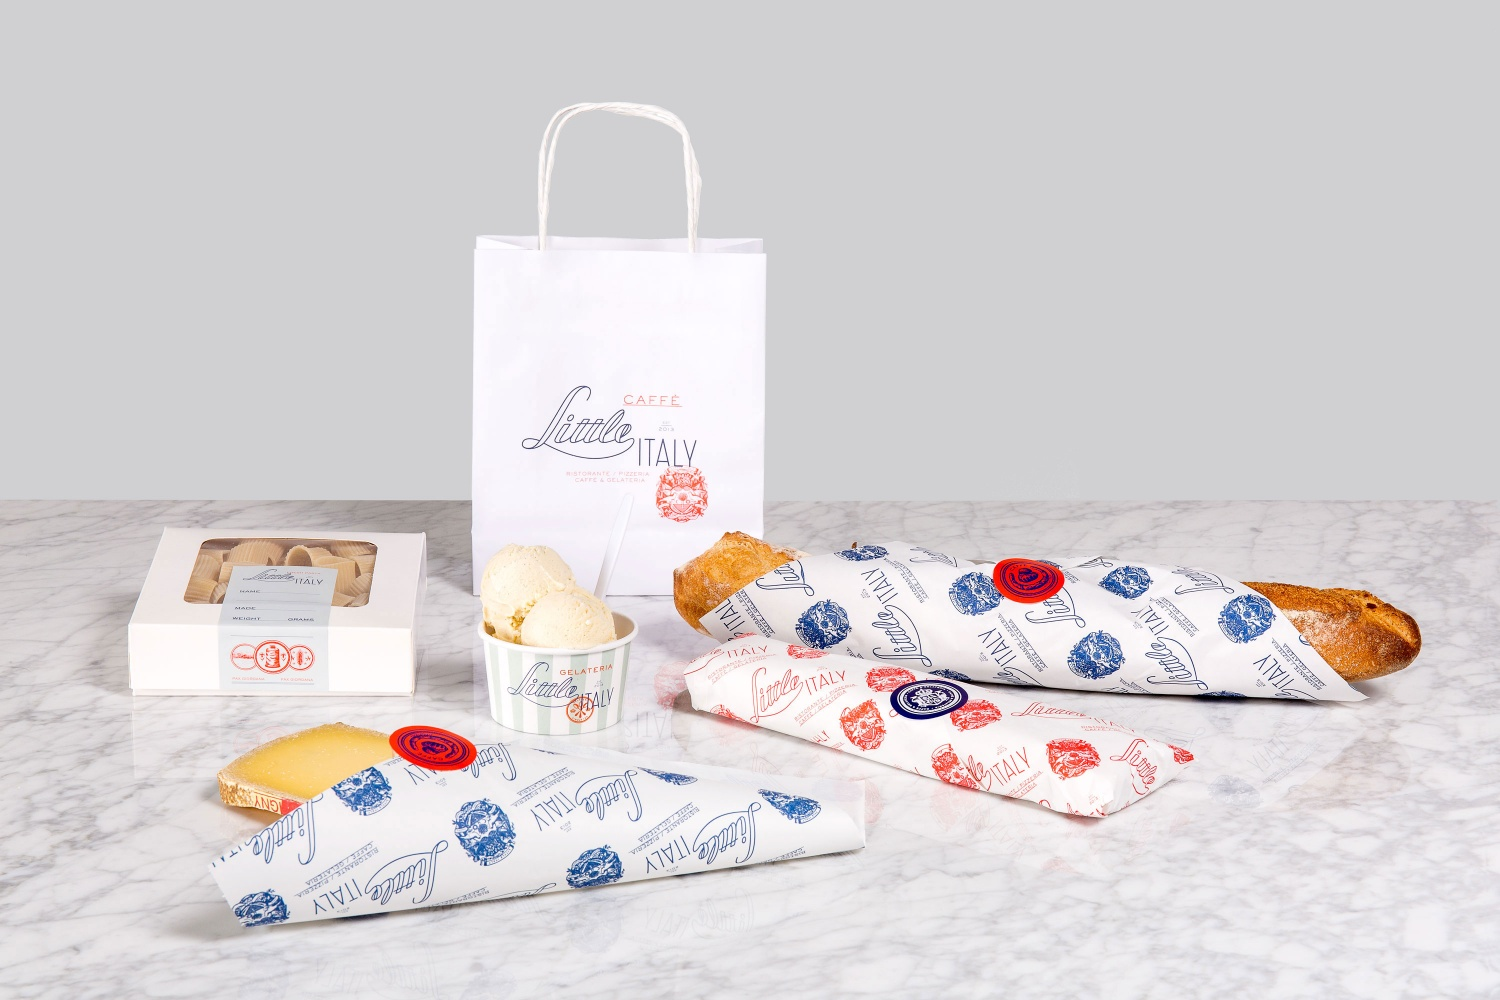 Branding and packaging by British studio Here Design for Amman-based restaurant Little Italy